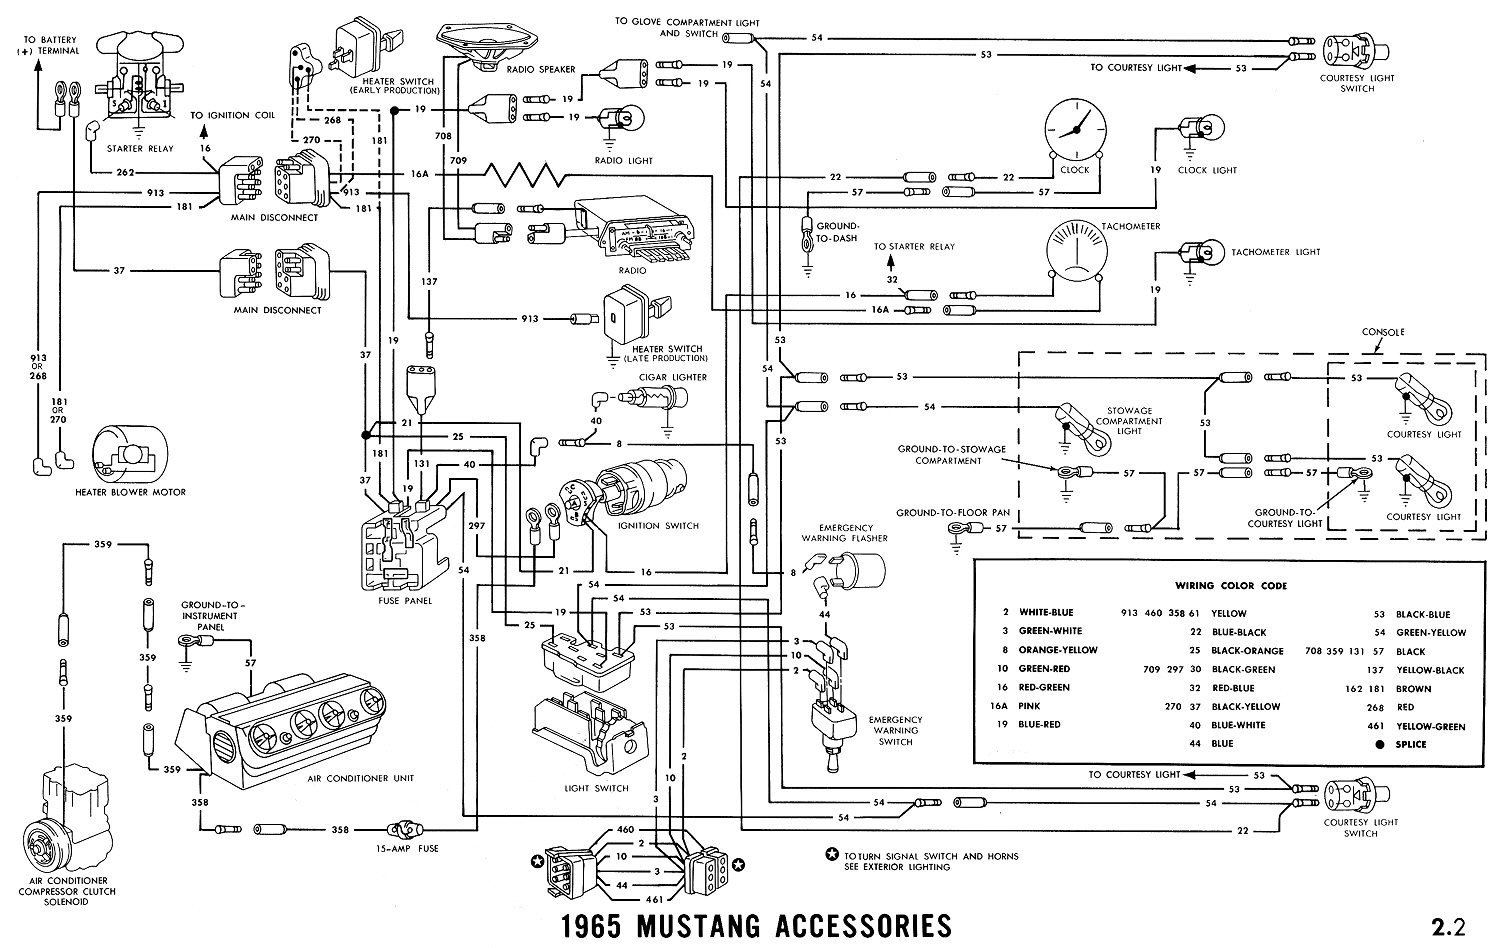 1965i 1965 mustang wiring diagrams average joe restoration 1965 ford mustang wiring diagrams at couponss.co